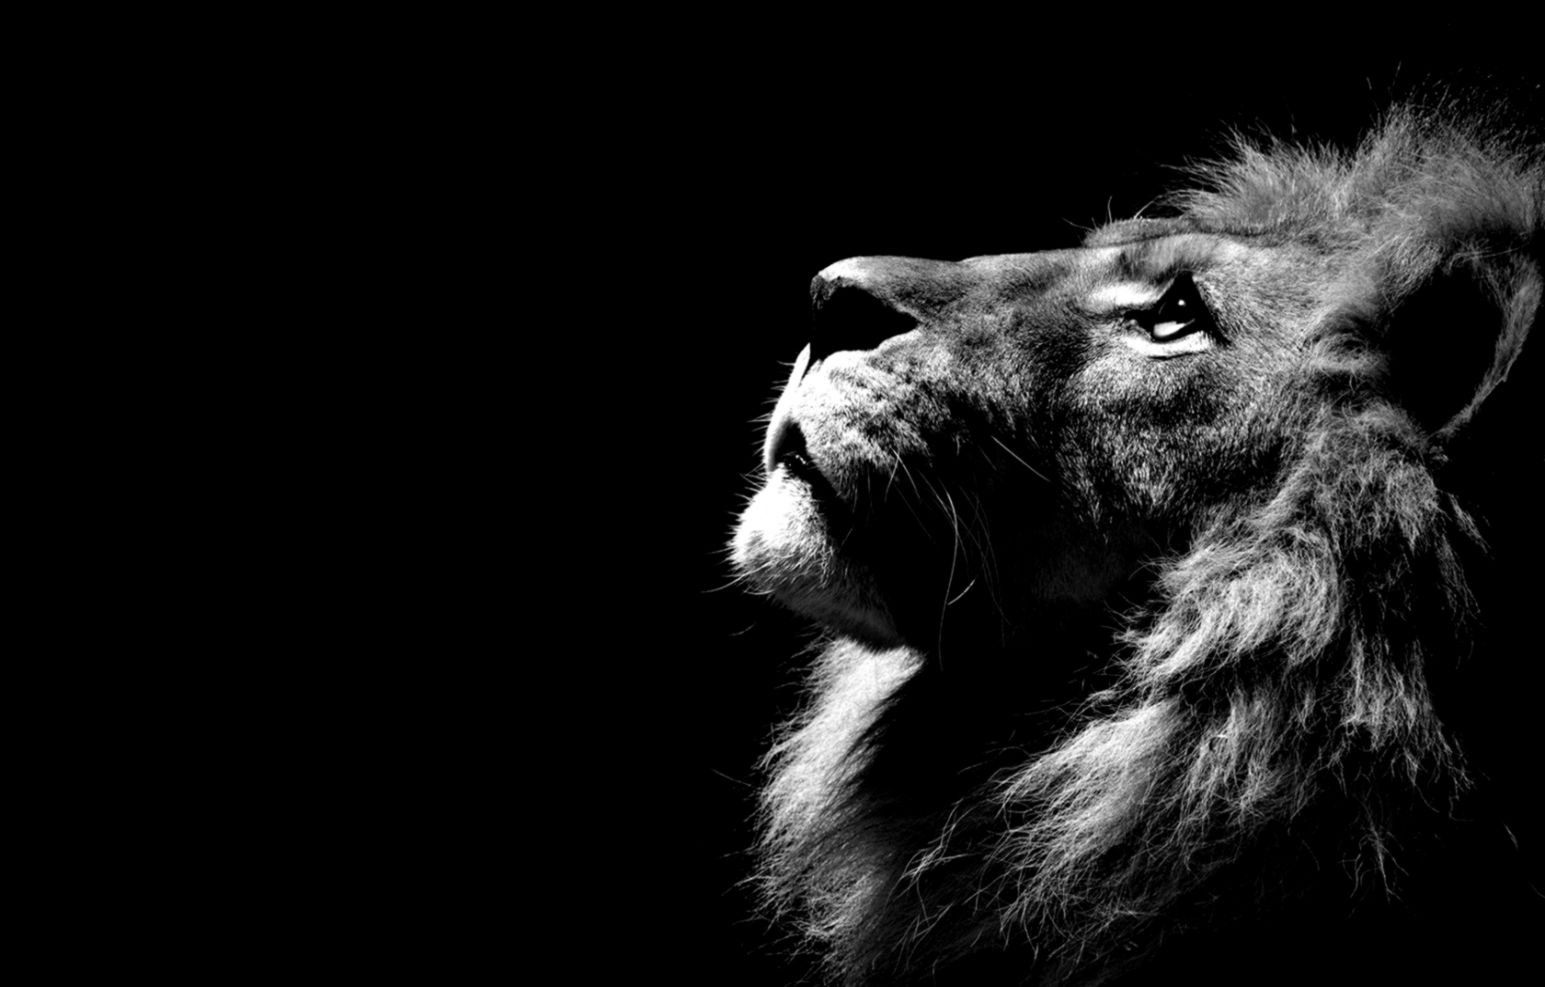 lion in the shadows hd wallpaper images new desktop